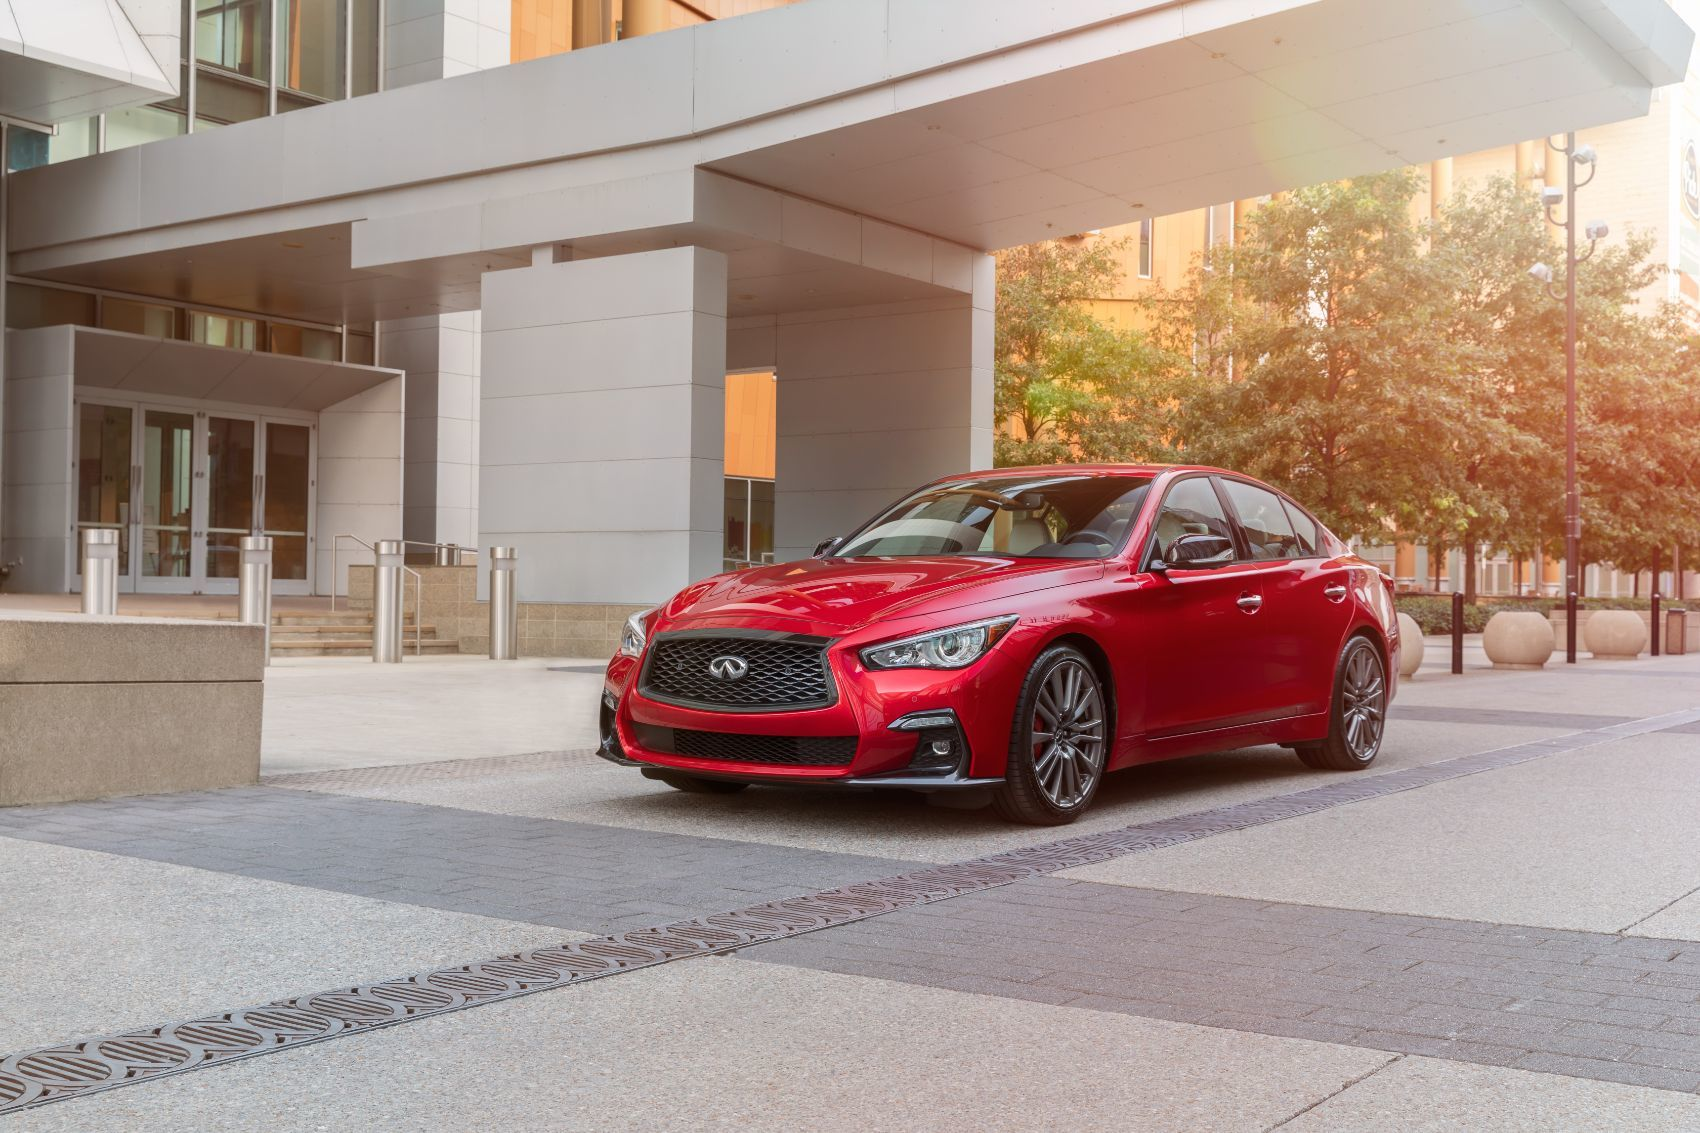 2021 Infiniti Q50: New Colors & Safety Features For This Sporty Sedan